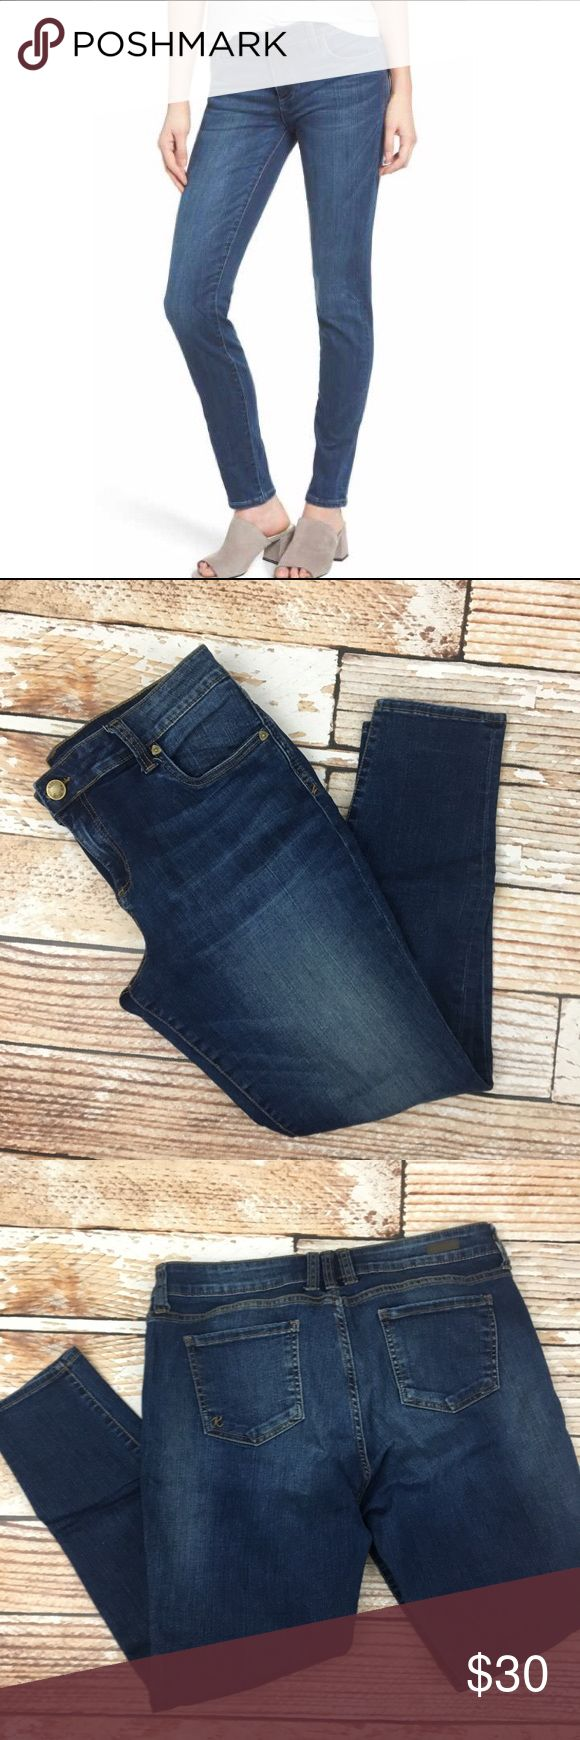 """KUT from the Kloth toothpick skinny jeans KUT from the Kloth toothpick skinny jeans size 14 petite  🌵Bundle deals available. I carry various sizes/brands. 🌵No trades, holds, or modeling. 🌵All reasonable offers accepted only through """"offer"""" button. No lowball offers please. Please submit final offer willing to pay as I prefer to not counteroffer. 🌵Happy Poshing! Kut from the Kloth Jeans Skinny"""